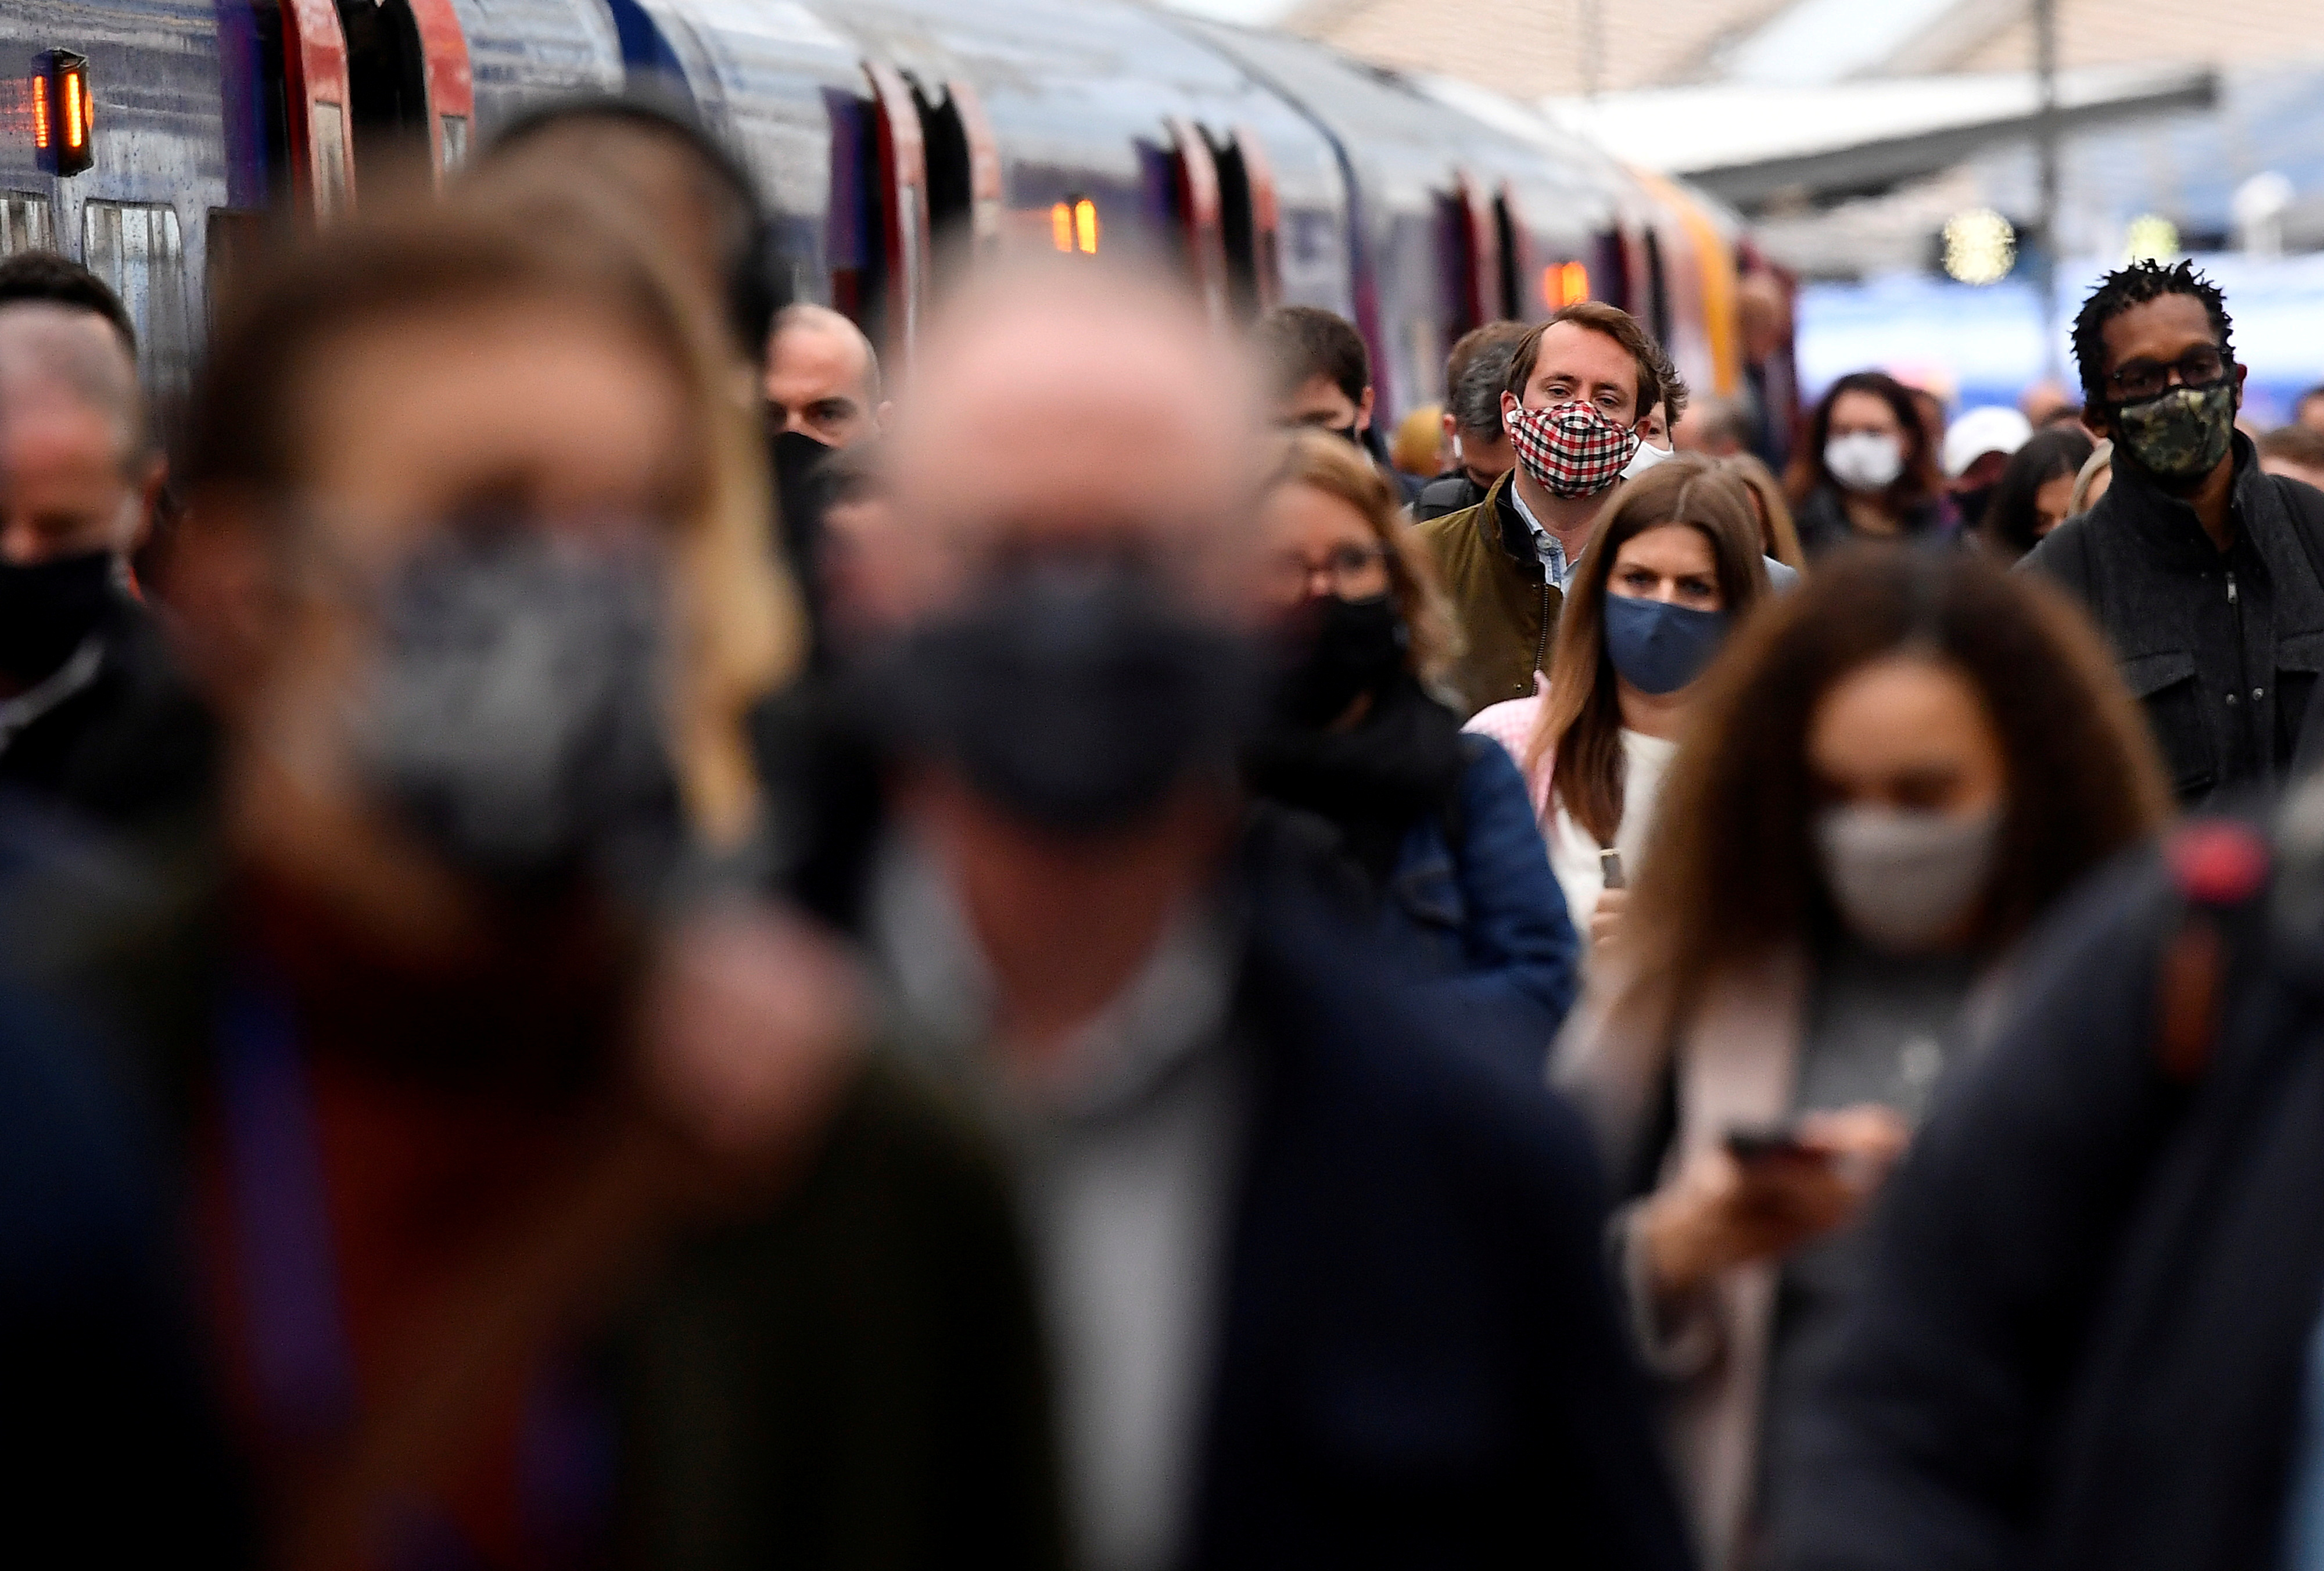 People travel through Waterloo railway station during the morning rush hour as coronavirus disease (COVID-19) restrictions continue to ease throughout the country, London, Britain, May 19, 2021. REUTERS/Toby Melville/File Photo